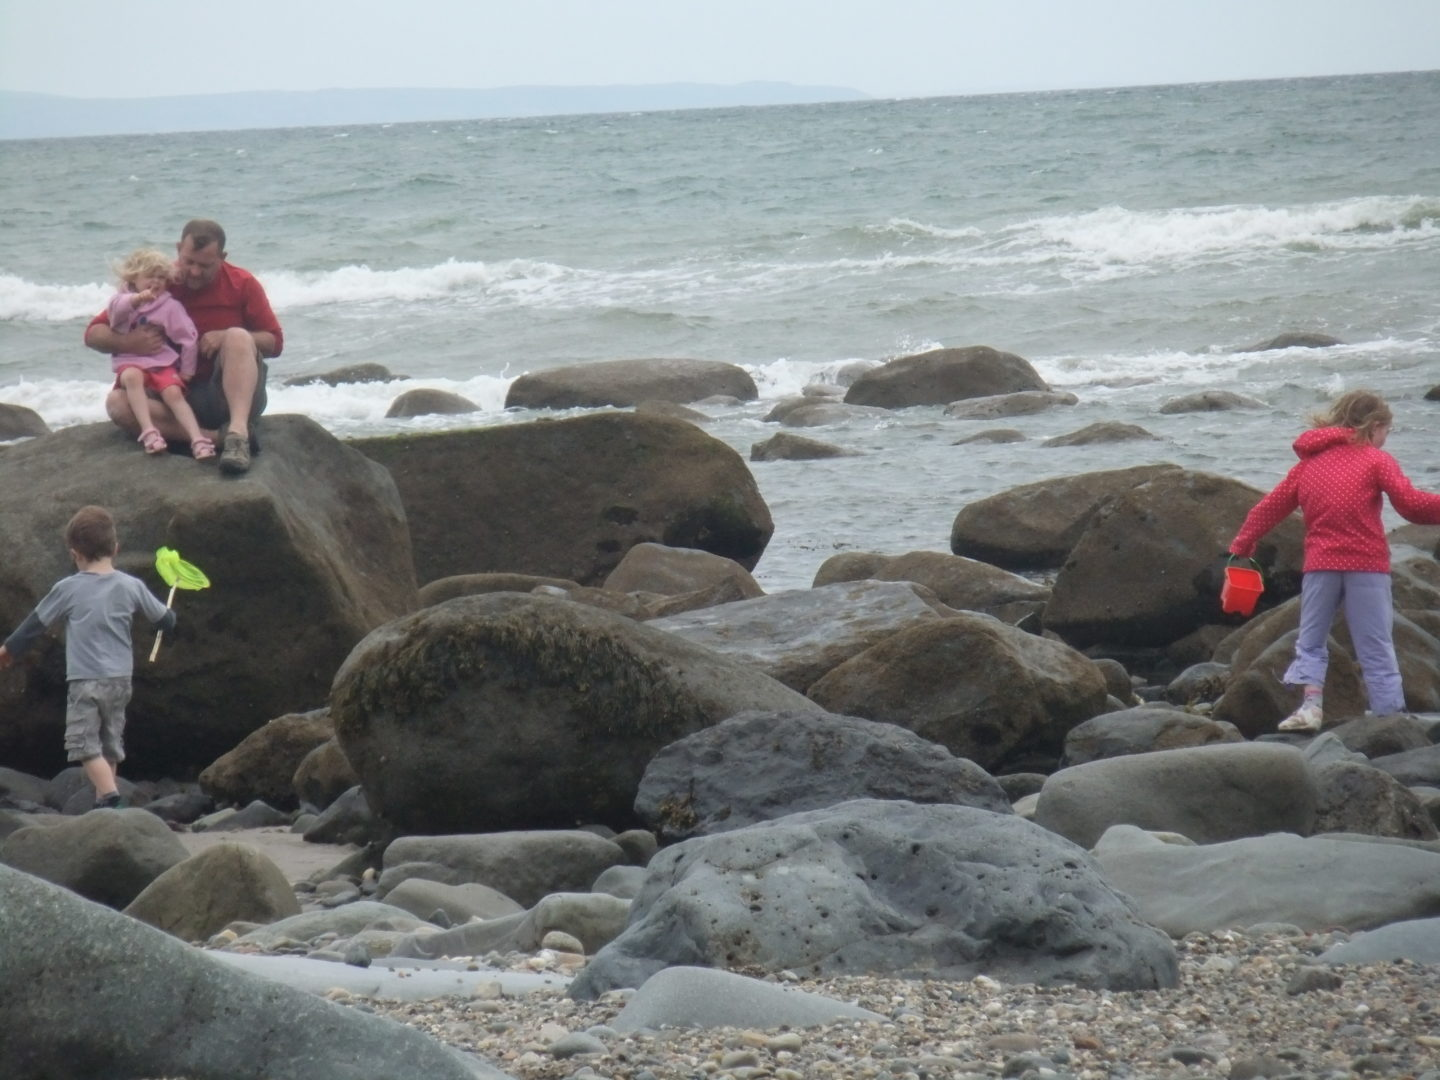 You can go rockpooling at any time of the day, this was at 6pm in the evening